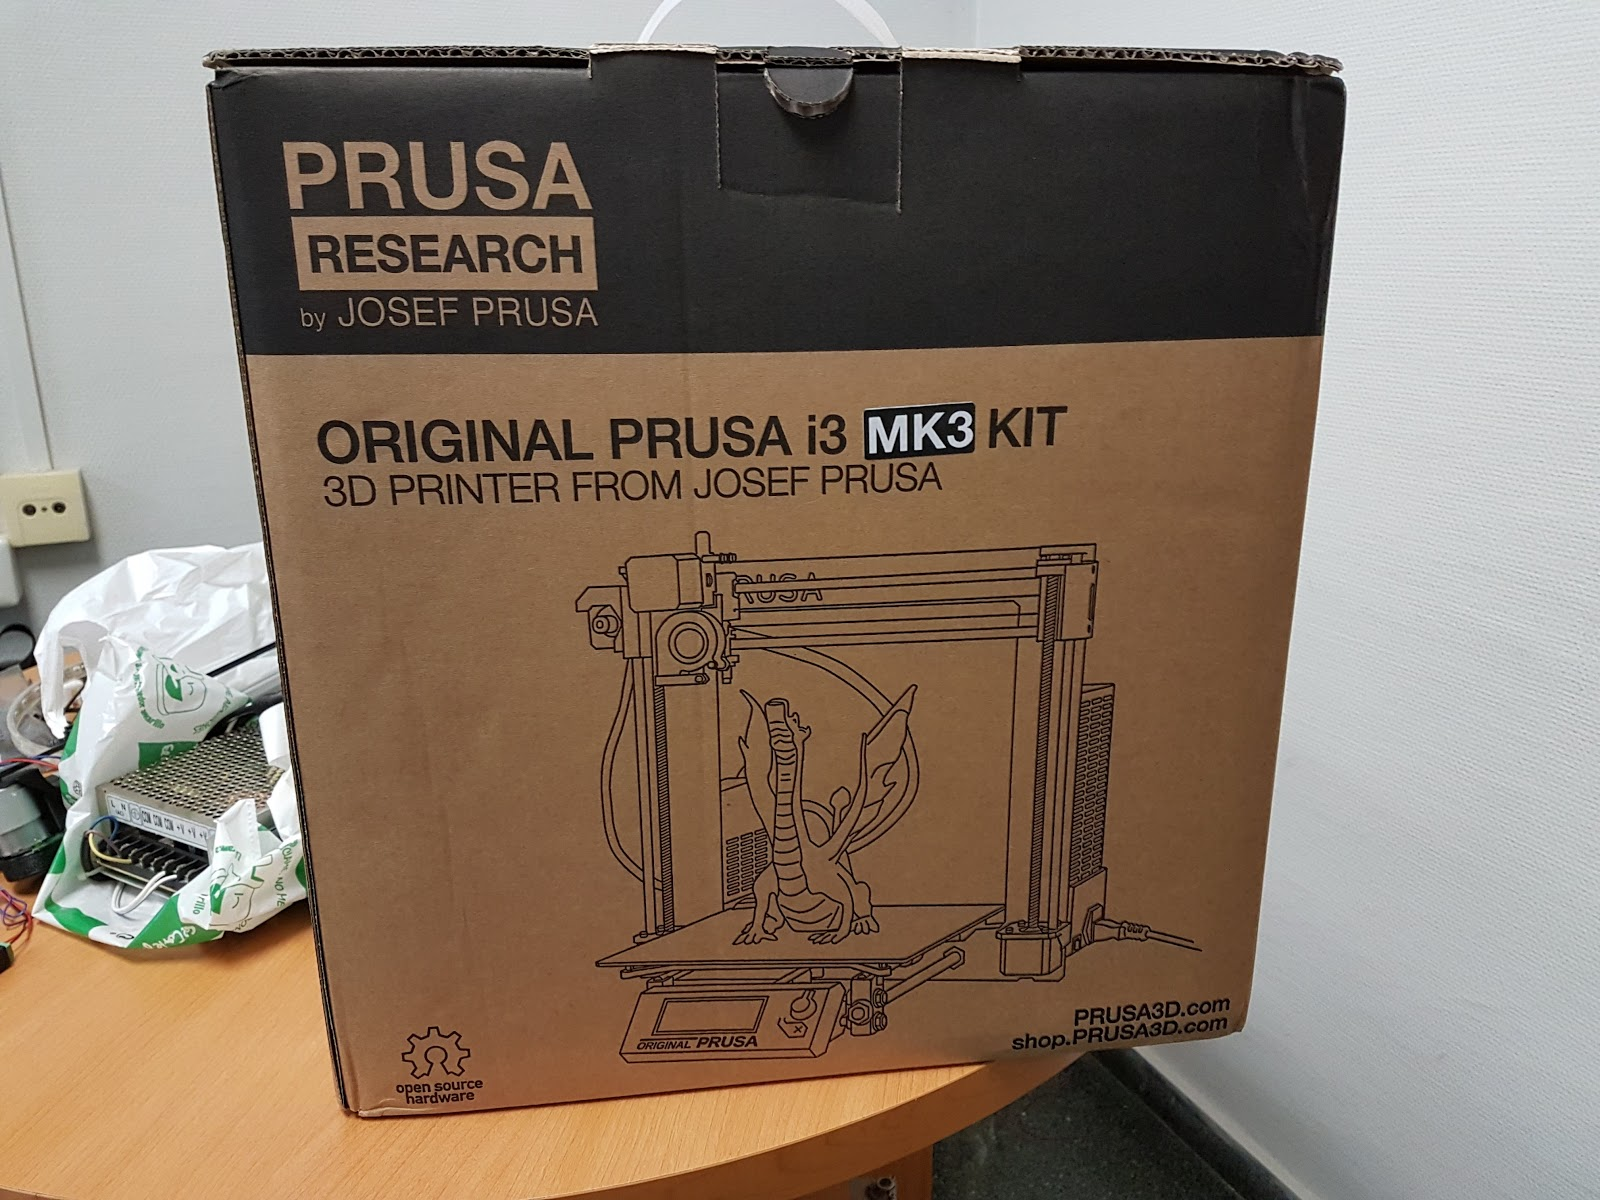 I bought a Prusa MK3 too